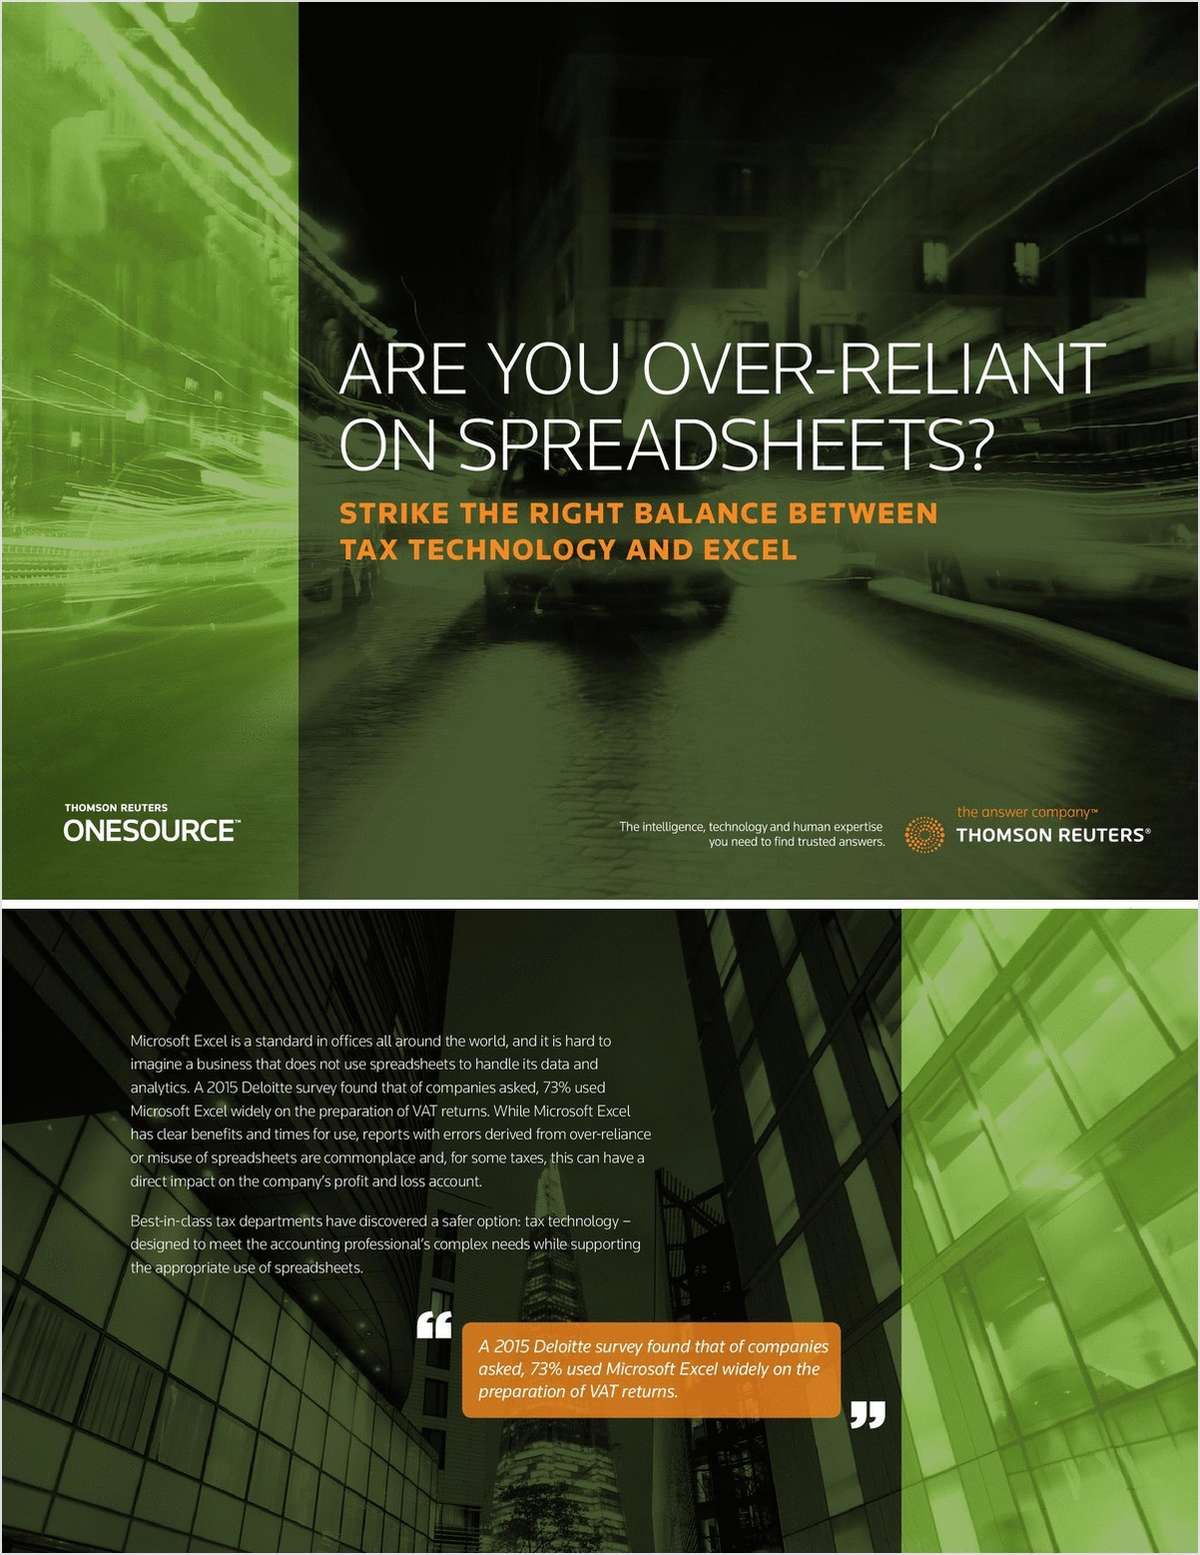 ARE YOU OVER-RELIANT ON SPREADSHEETS?